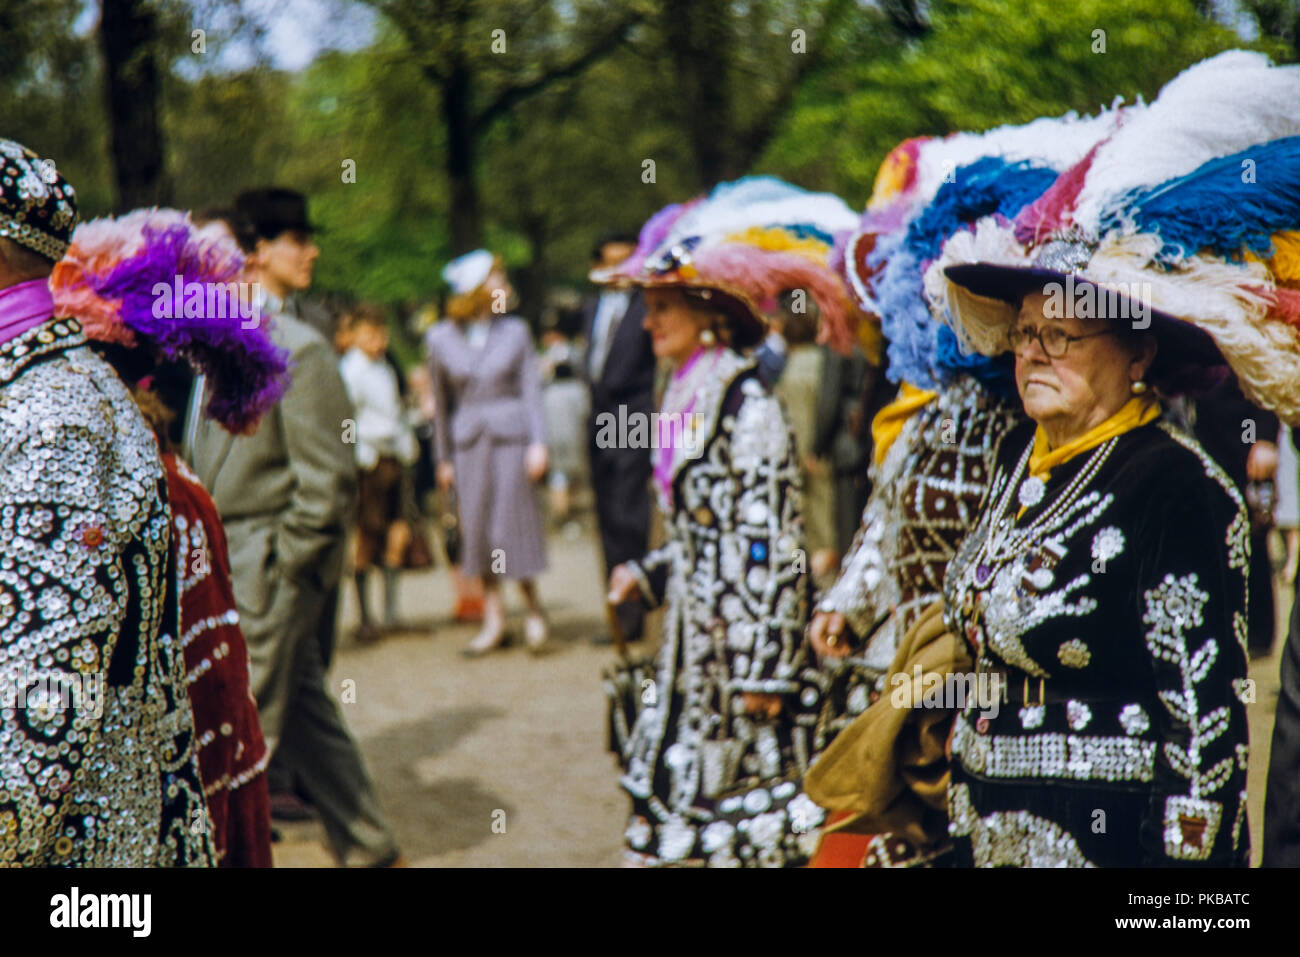 Pearly Kings and Queens in Hyde Park, London during the 1950s - Stock Image